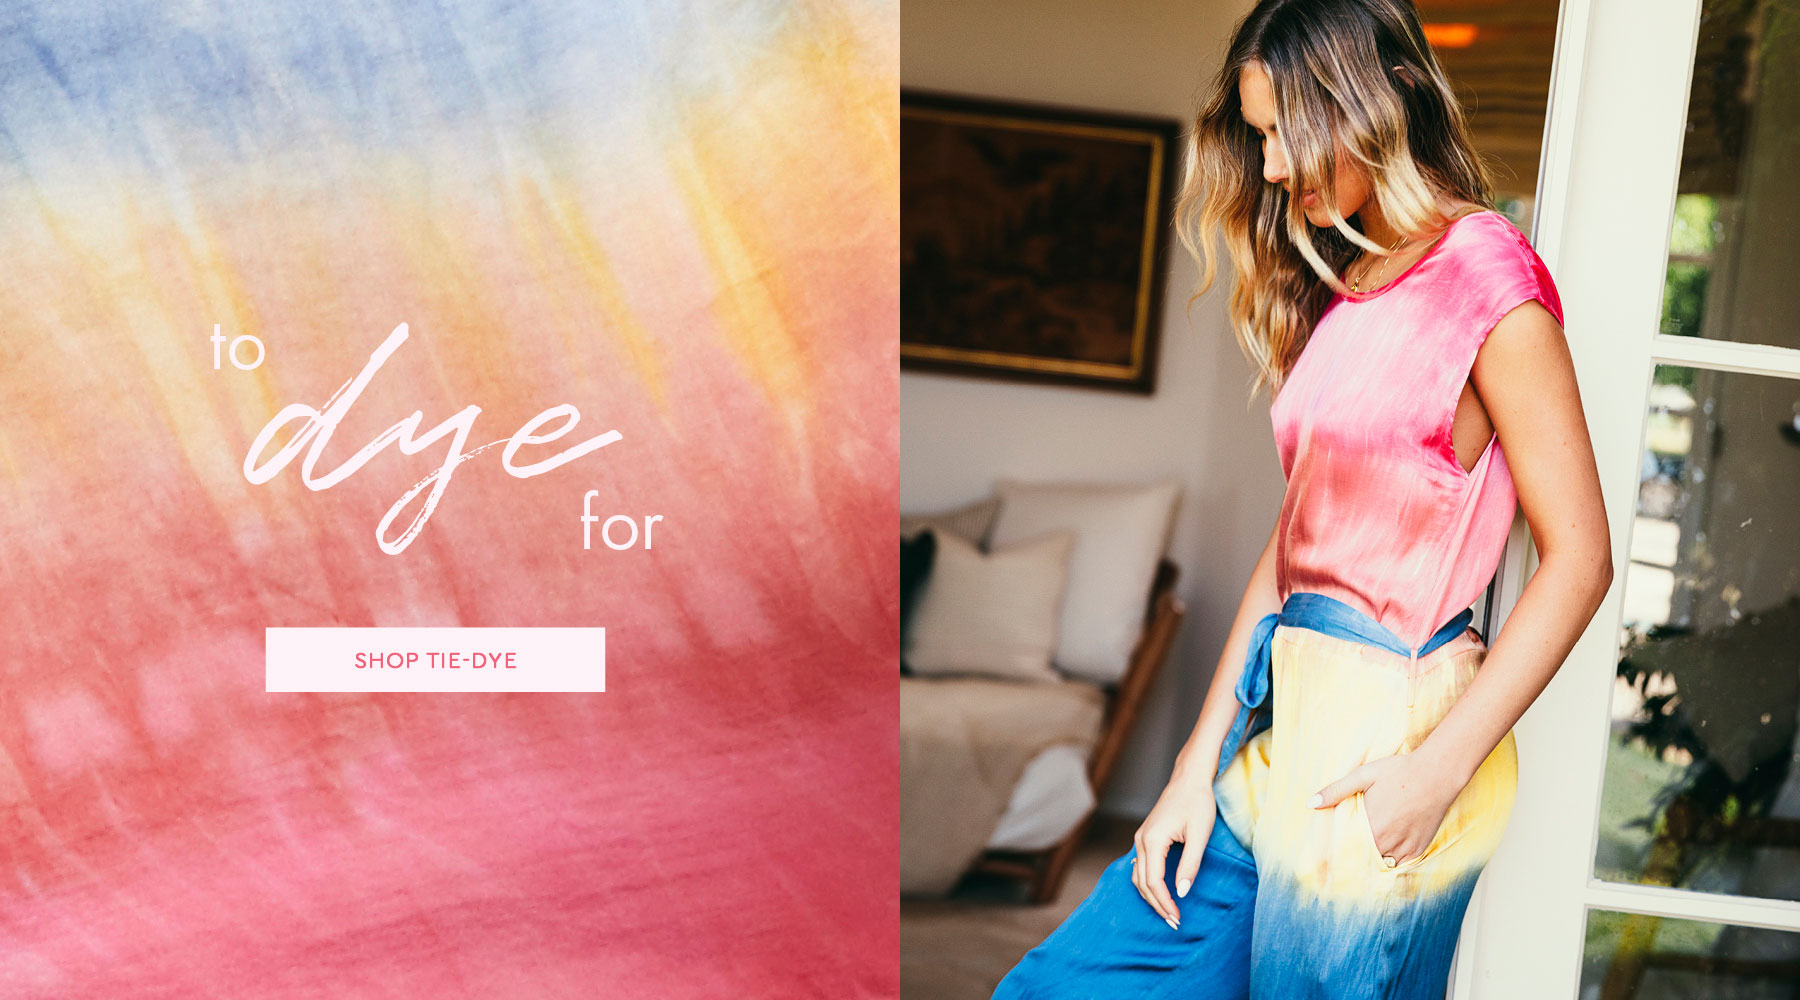 Happy hippie vibes are here. ✌️ See why we're loving tie-dye this summer